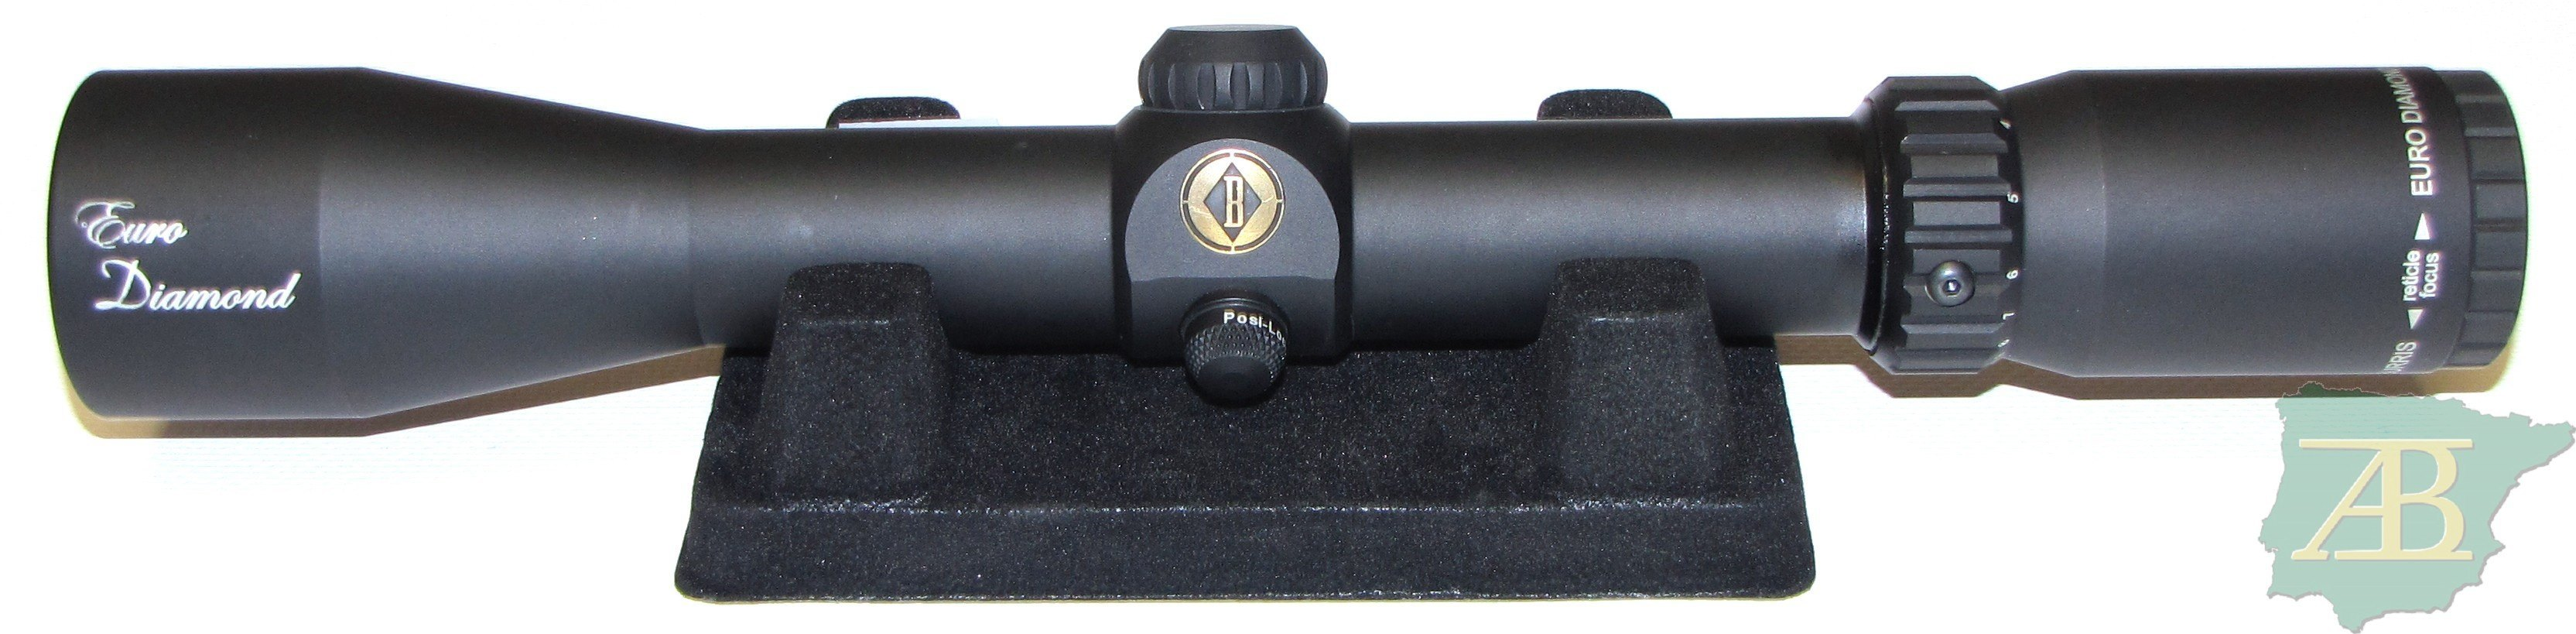 BURRIS EURO DIAMOND 3-10X40